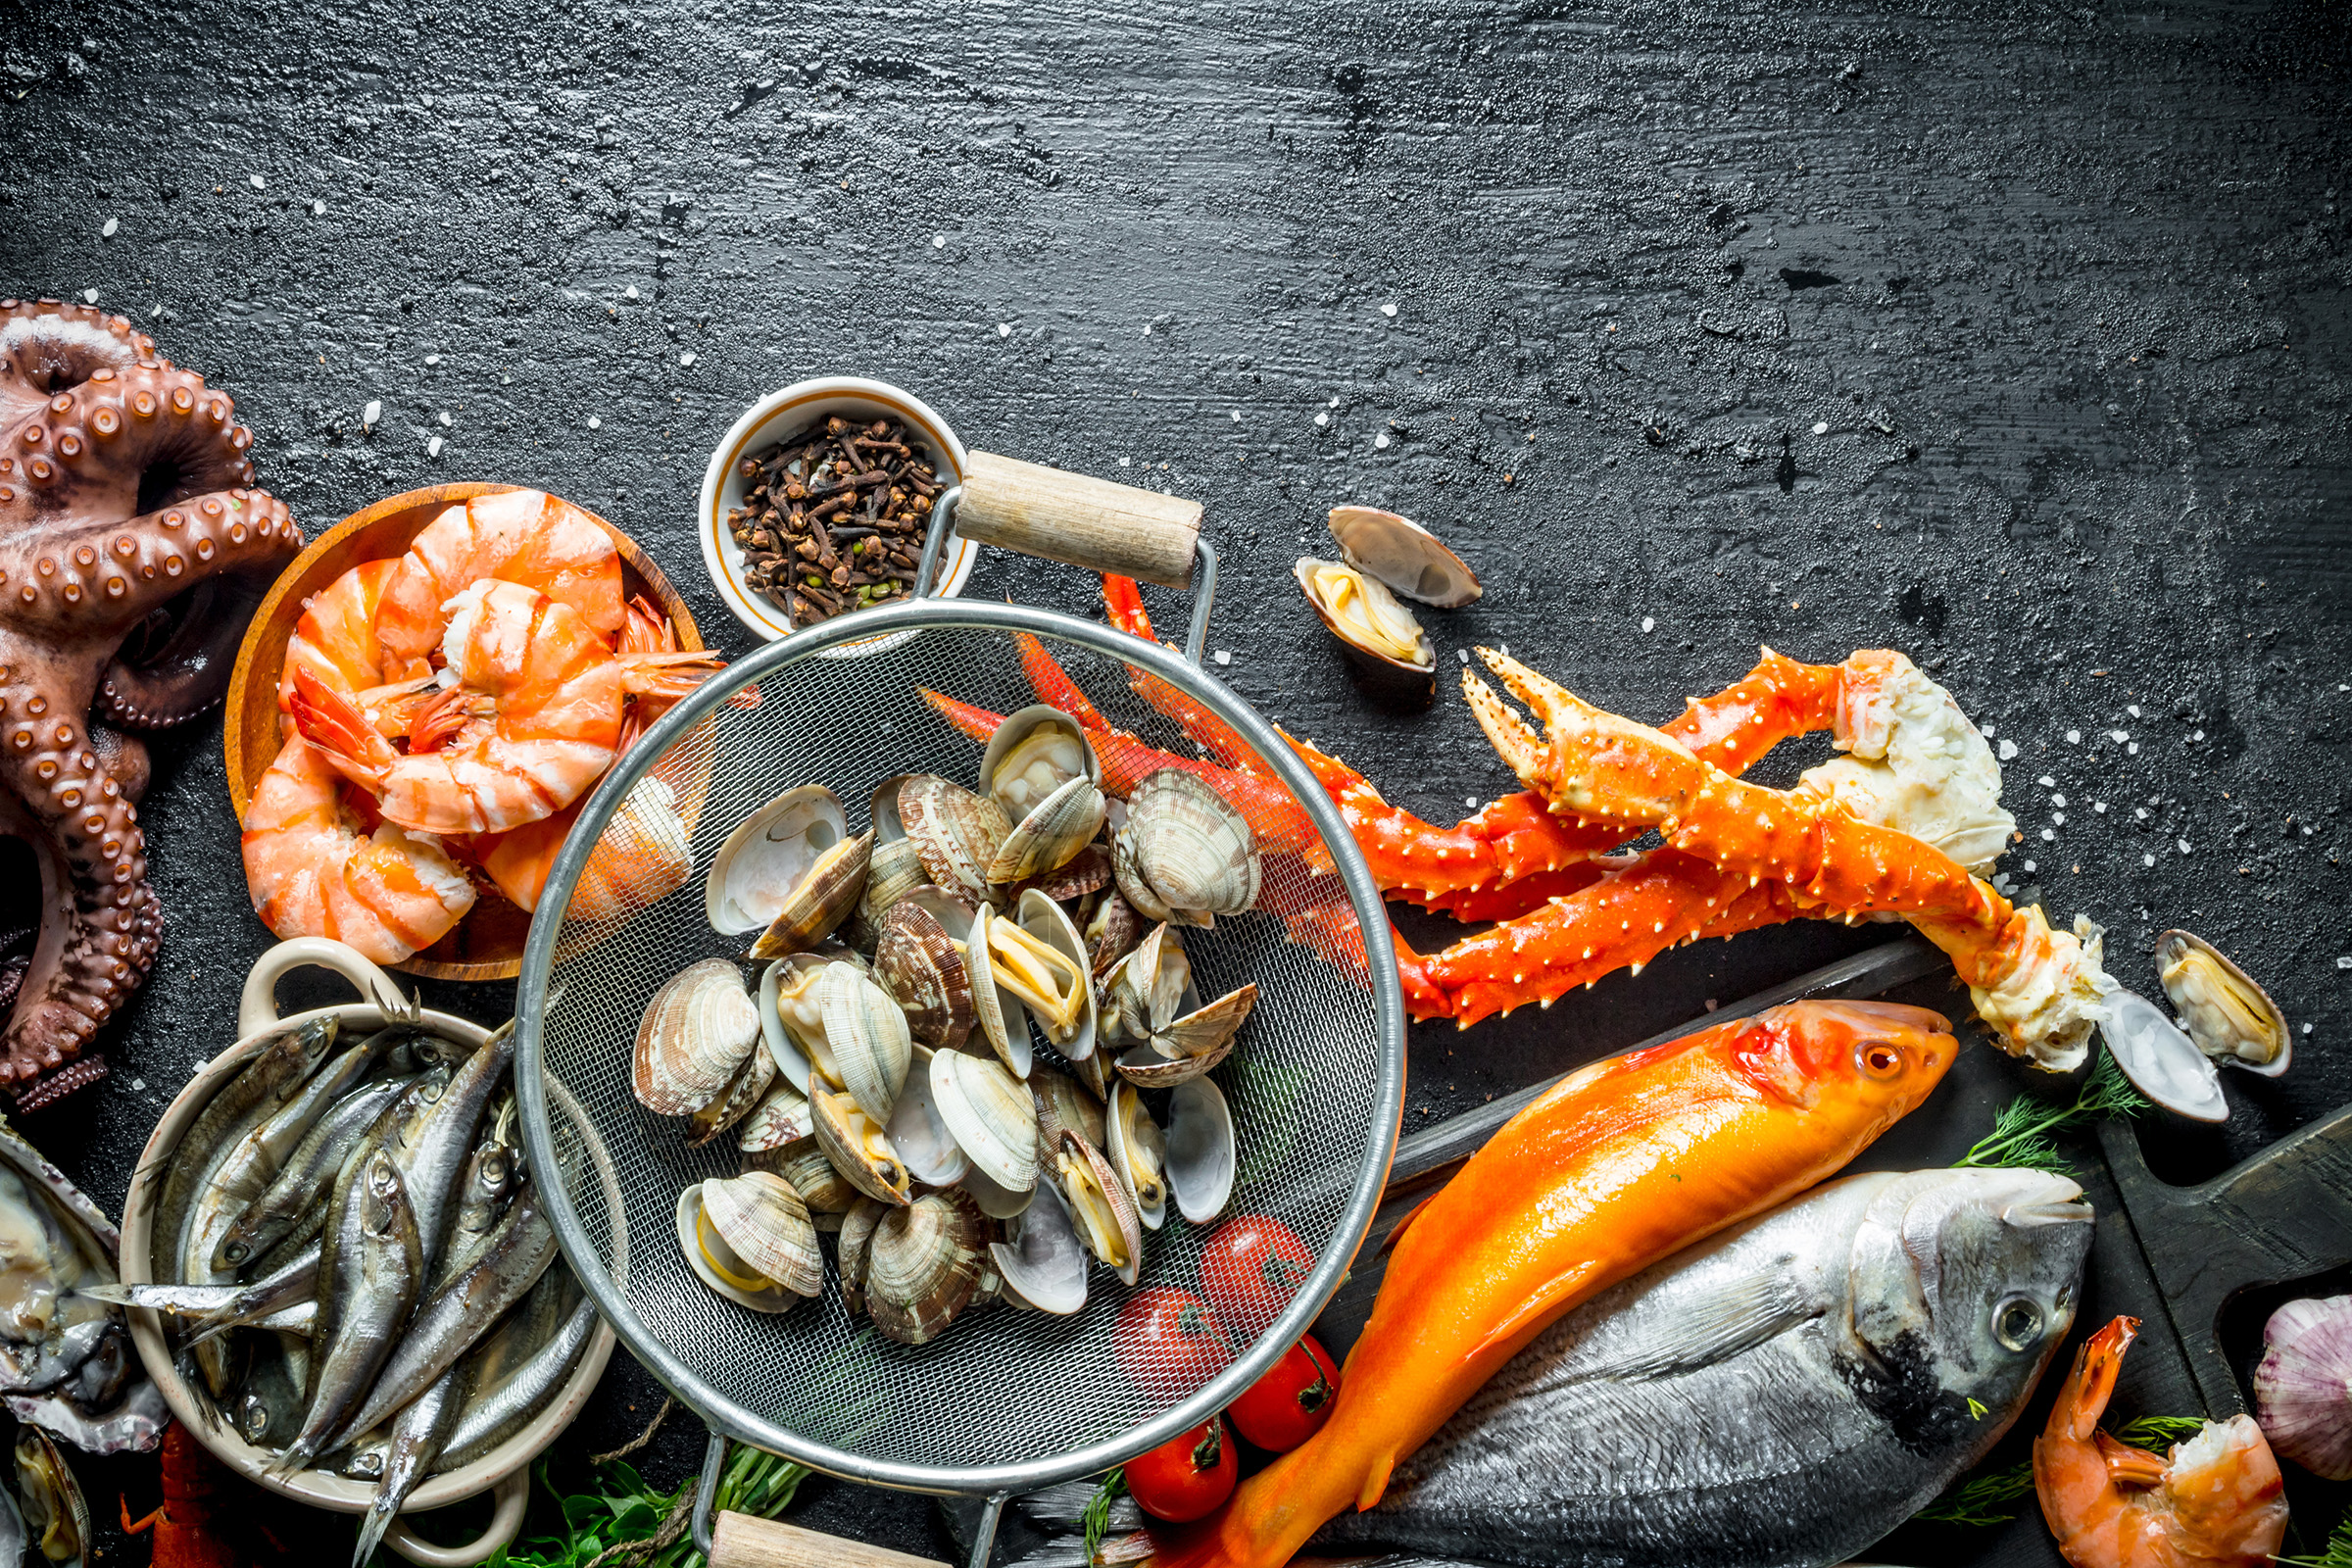 Bar Harbor Seafood retail store sample variety including clams, shrimp, octopus, king crab legs and more